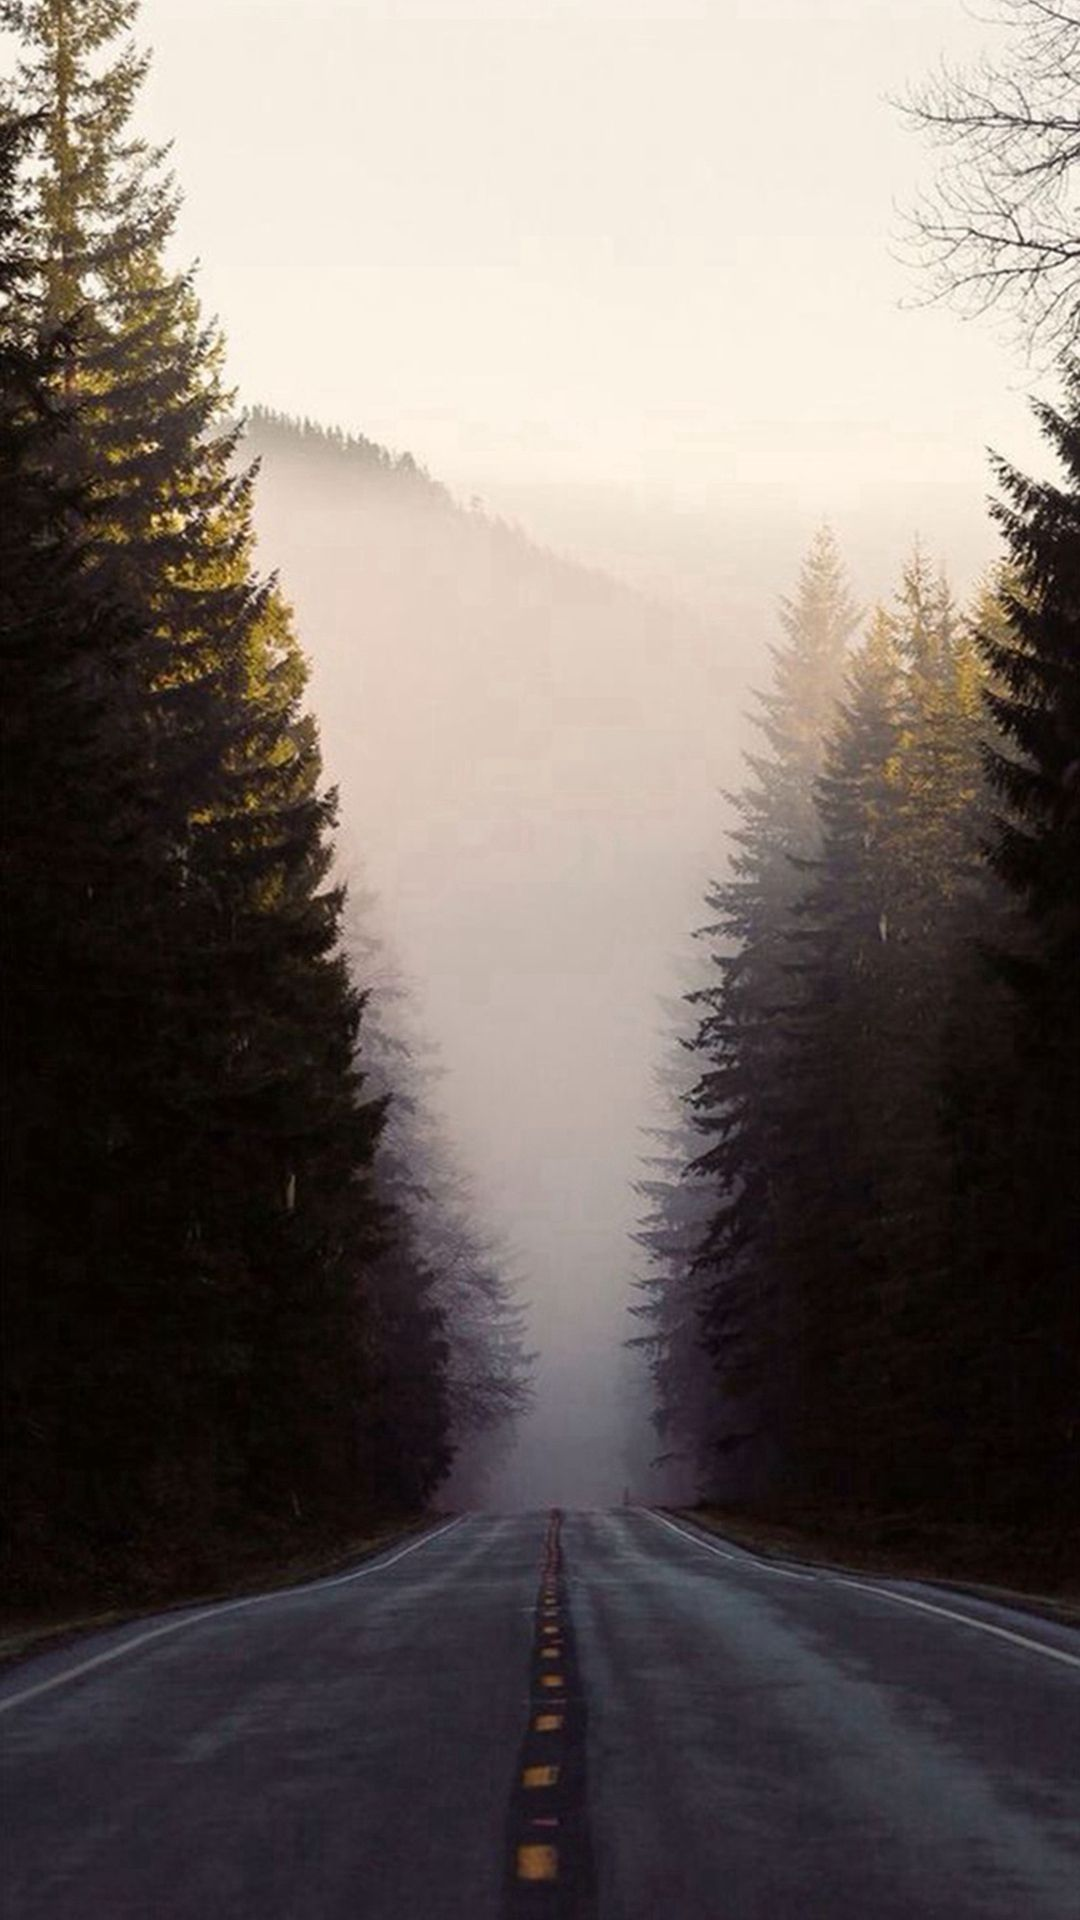 Misty Forest Road Pine Trees Iphone 8 Wallpaper Iphone Wallpaper Winter Landscape Background Tree Wallpaper Iphone